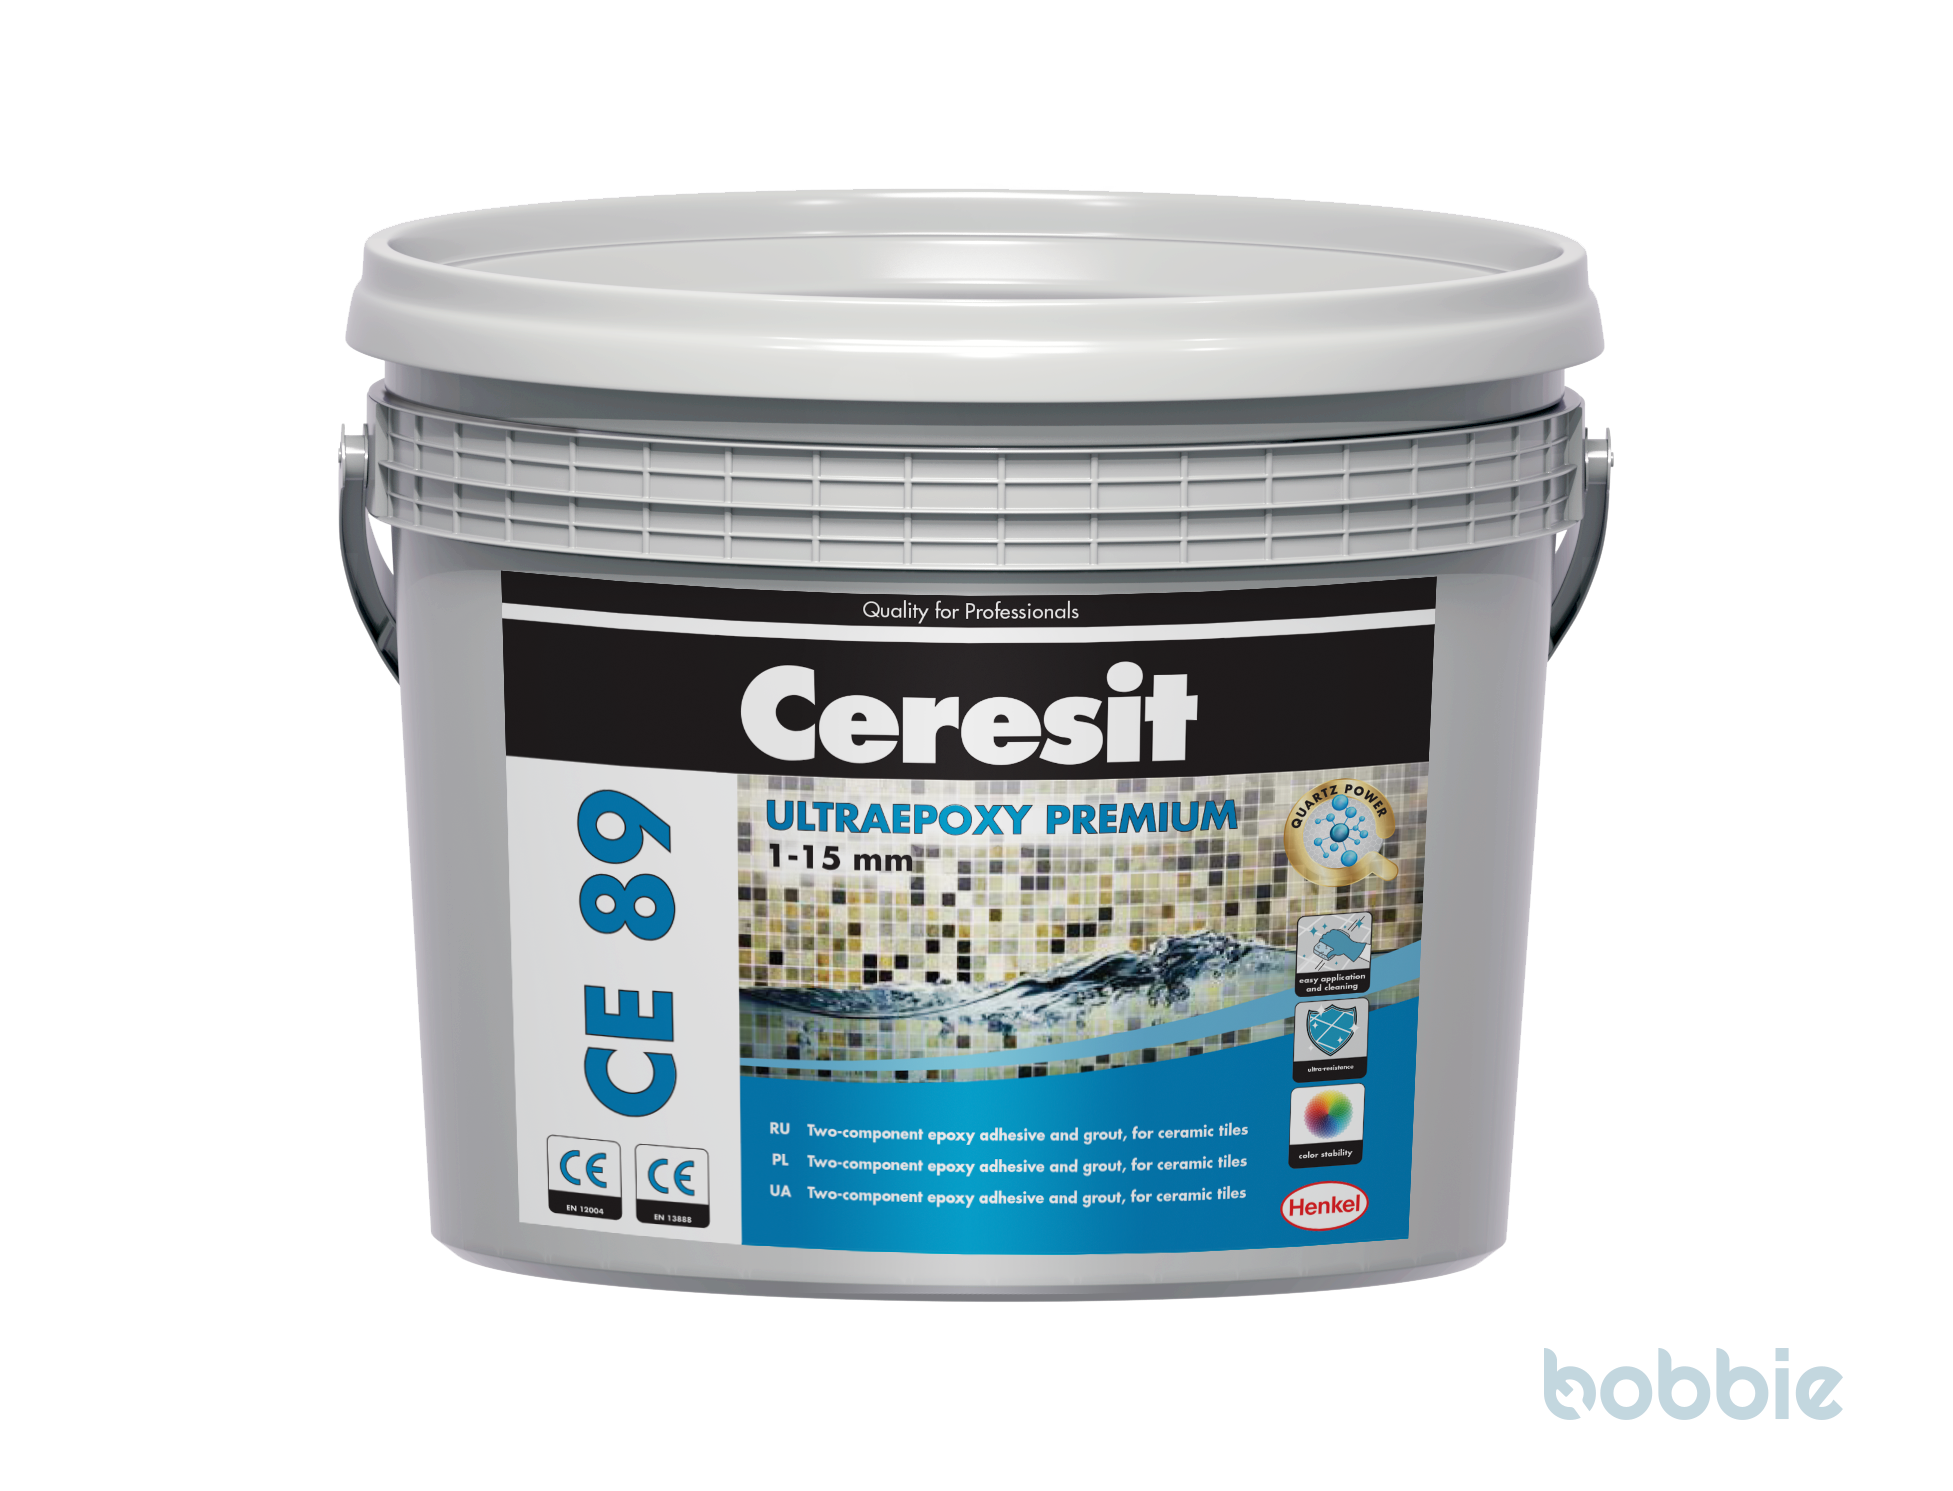 CE 89 Ultraepoxy Premium